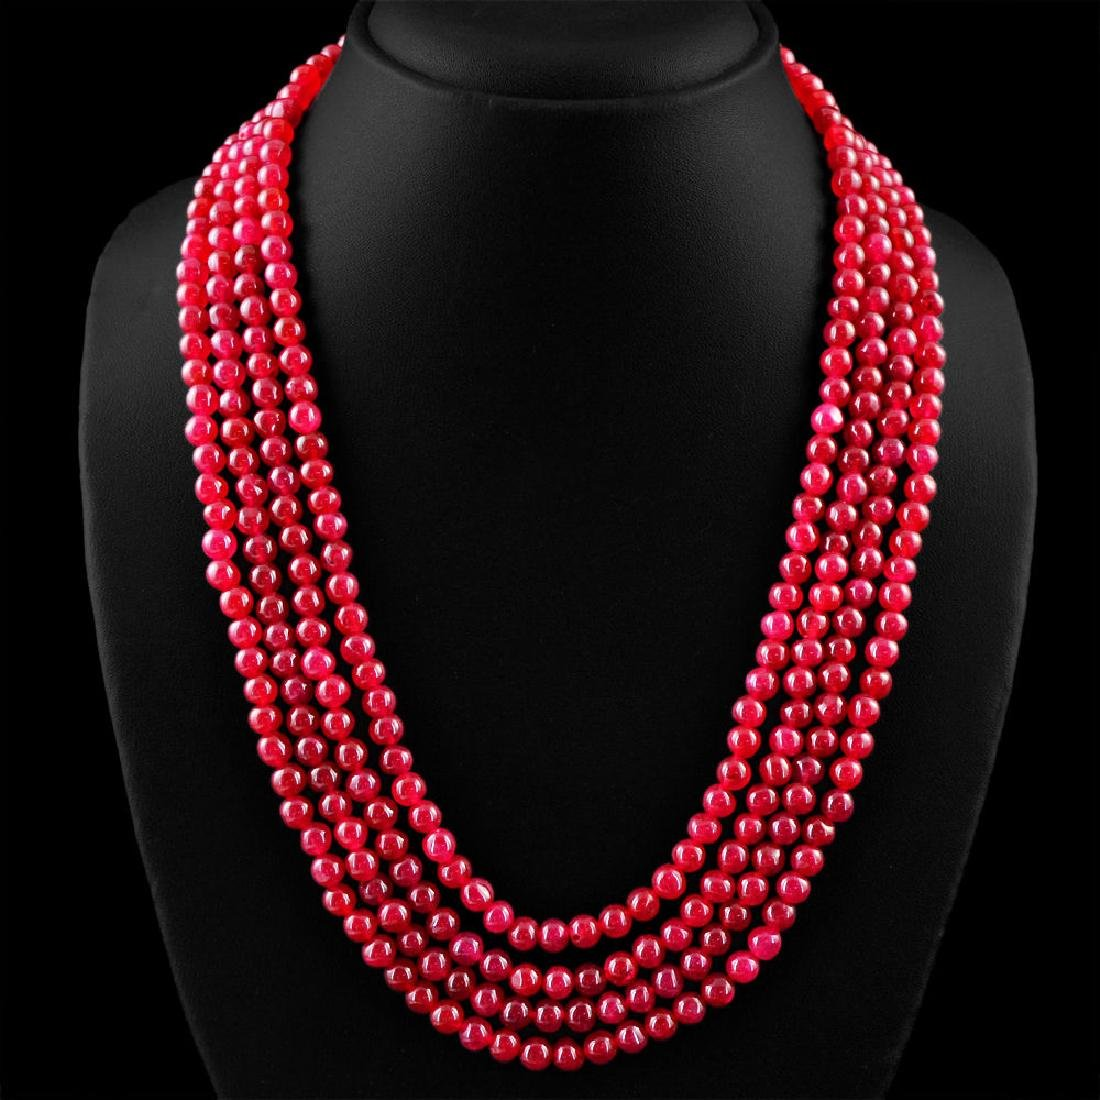 Earth Mined 4 Strand Red Ruby Round Shape Beads Necklac - 2